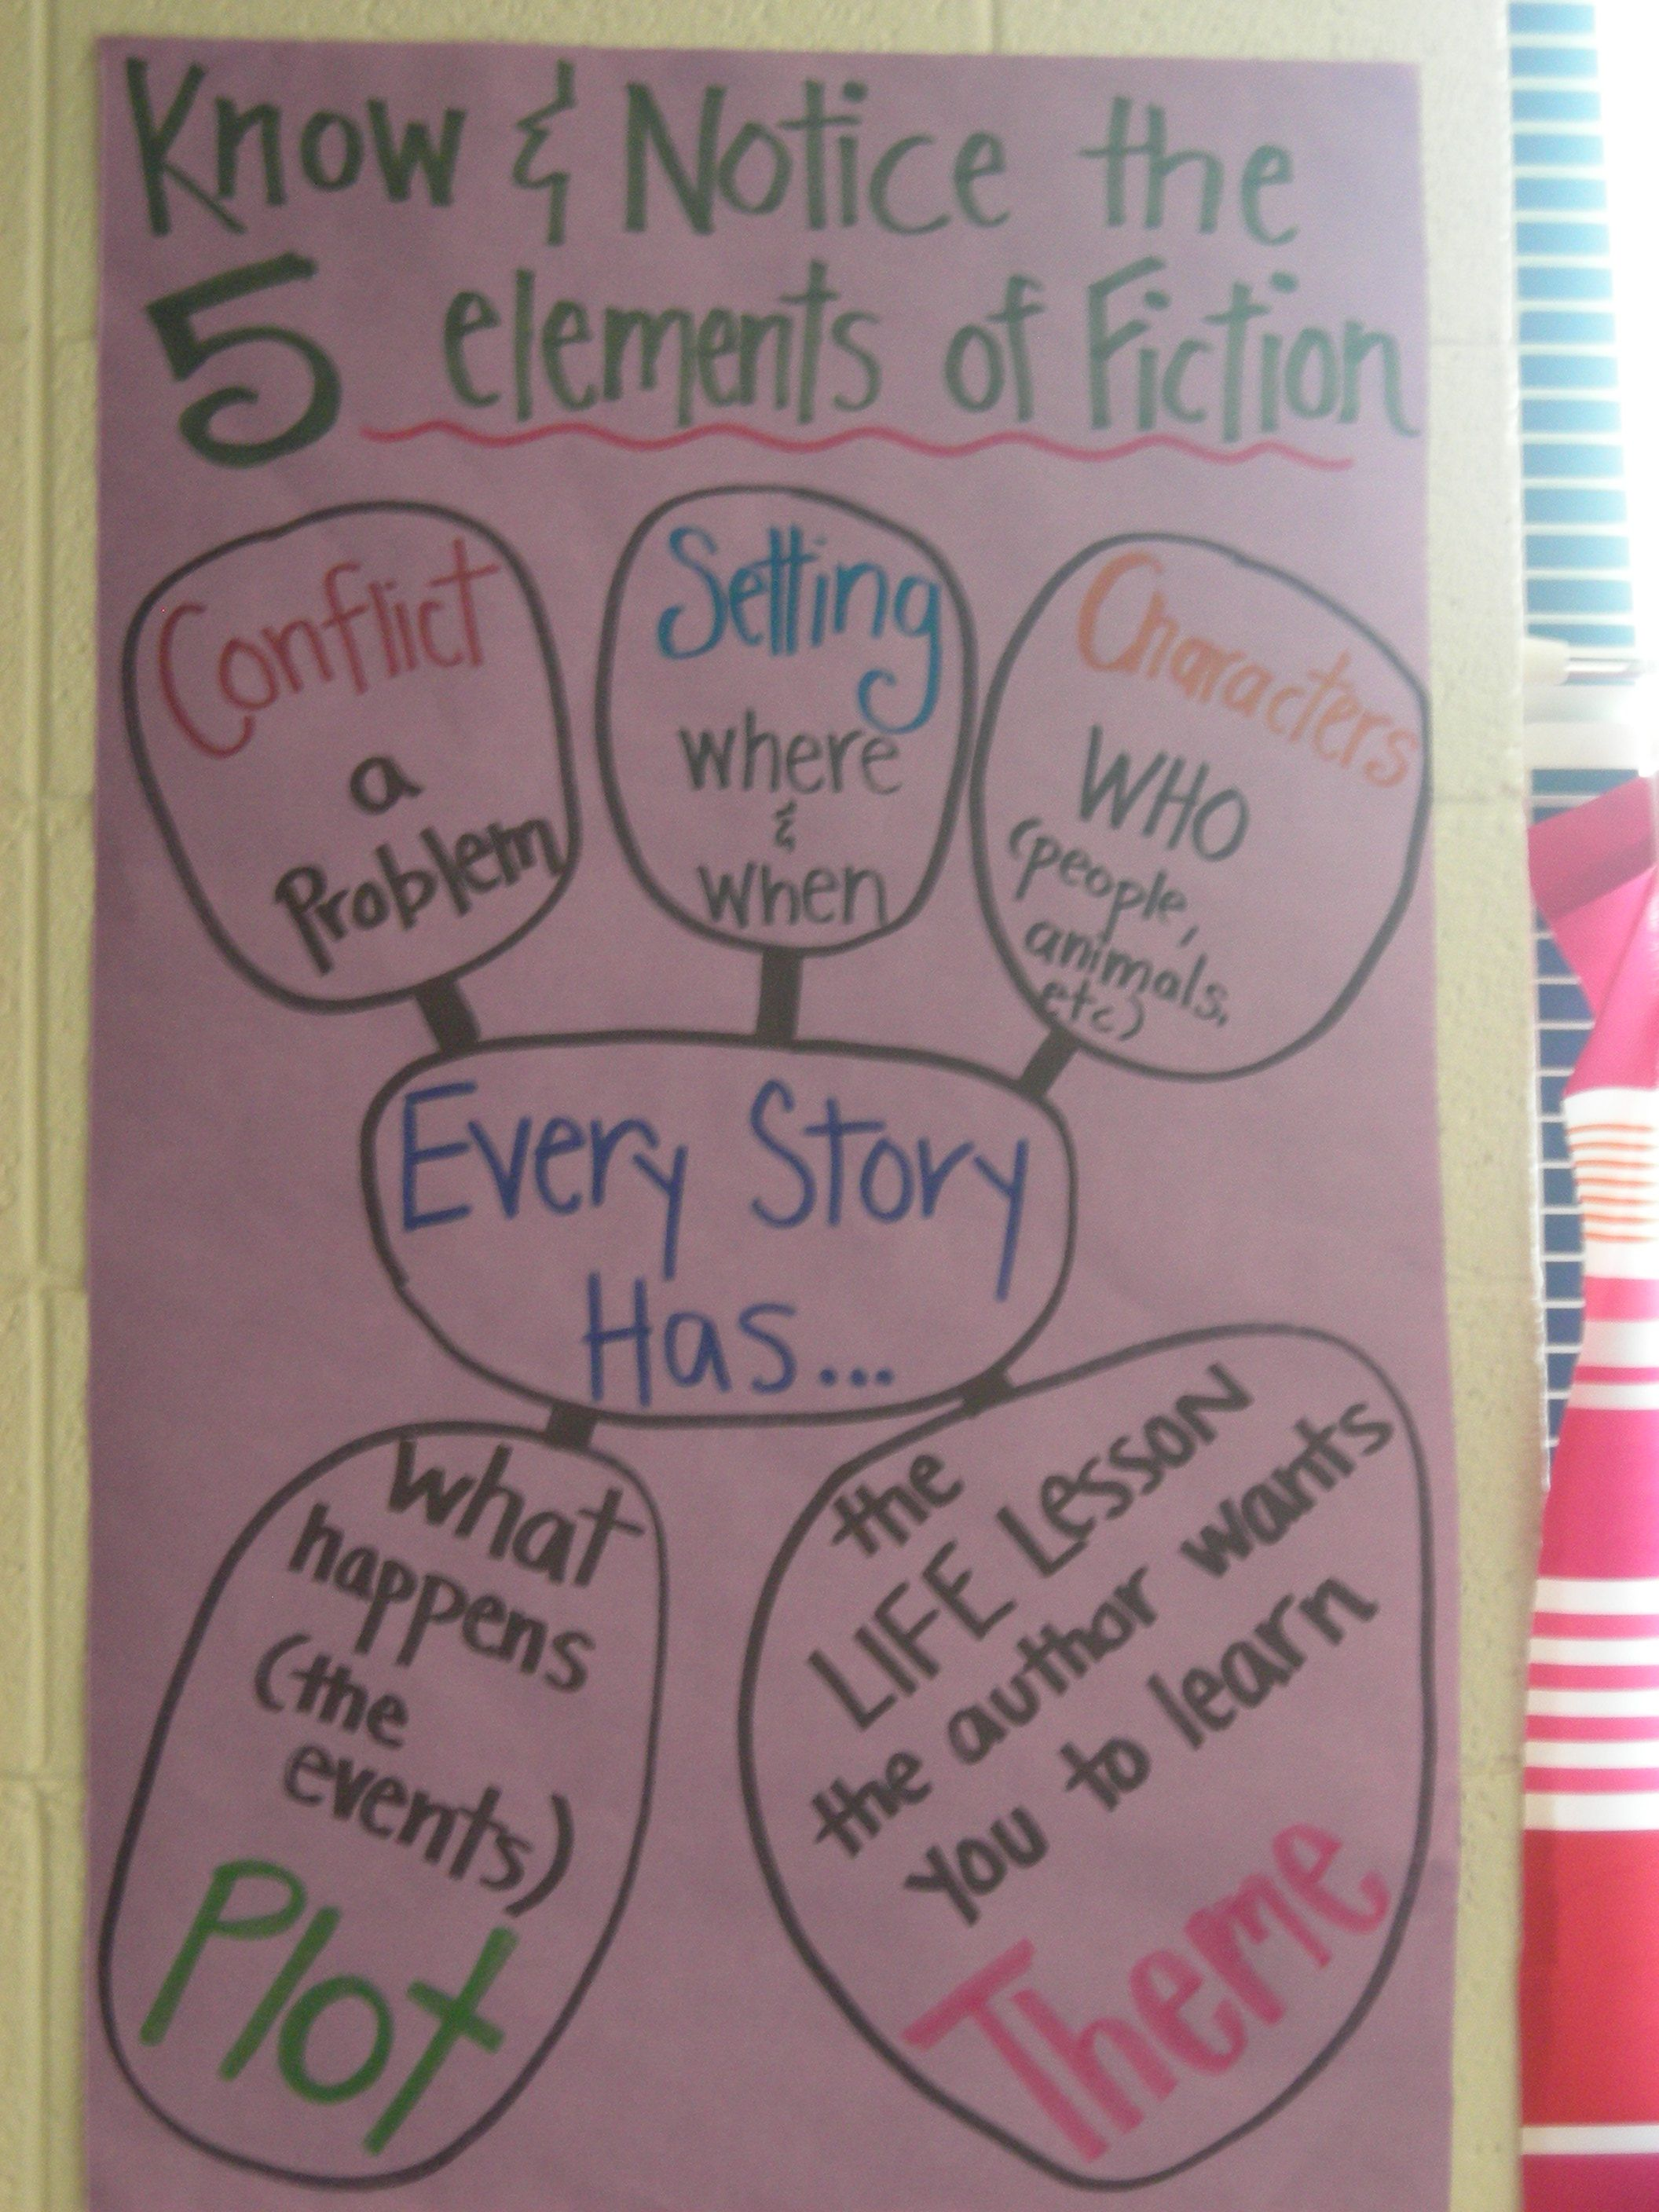 Five Elements Of Fiction